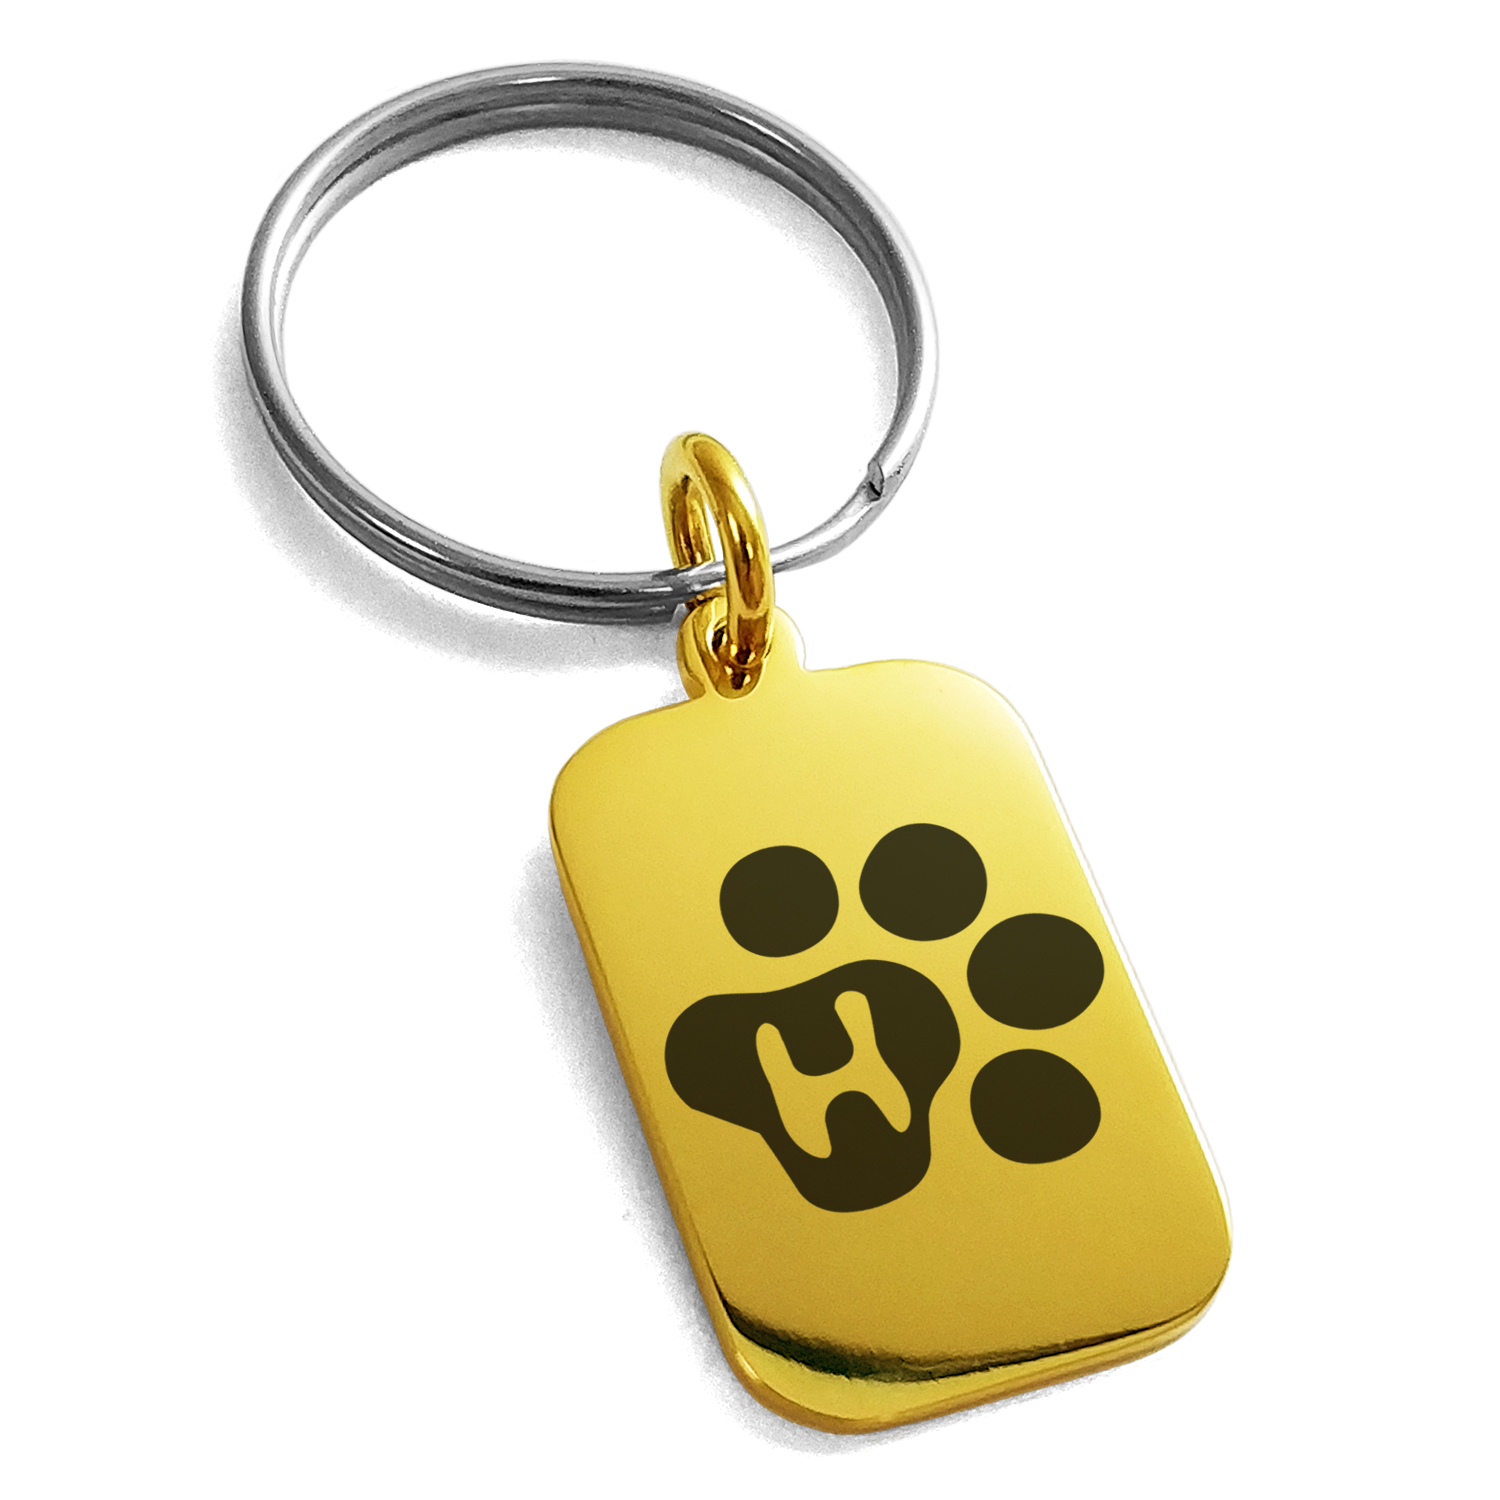 Stainless Steel Letter H Initial Cat Dog Paws Monogram Engraved Small Rectangle Dog Tag Charm Keychain Keyring